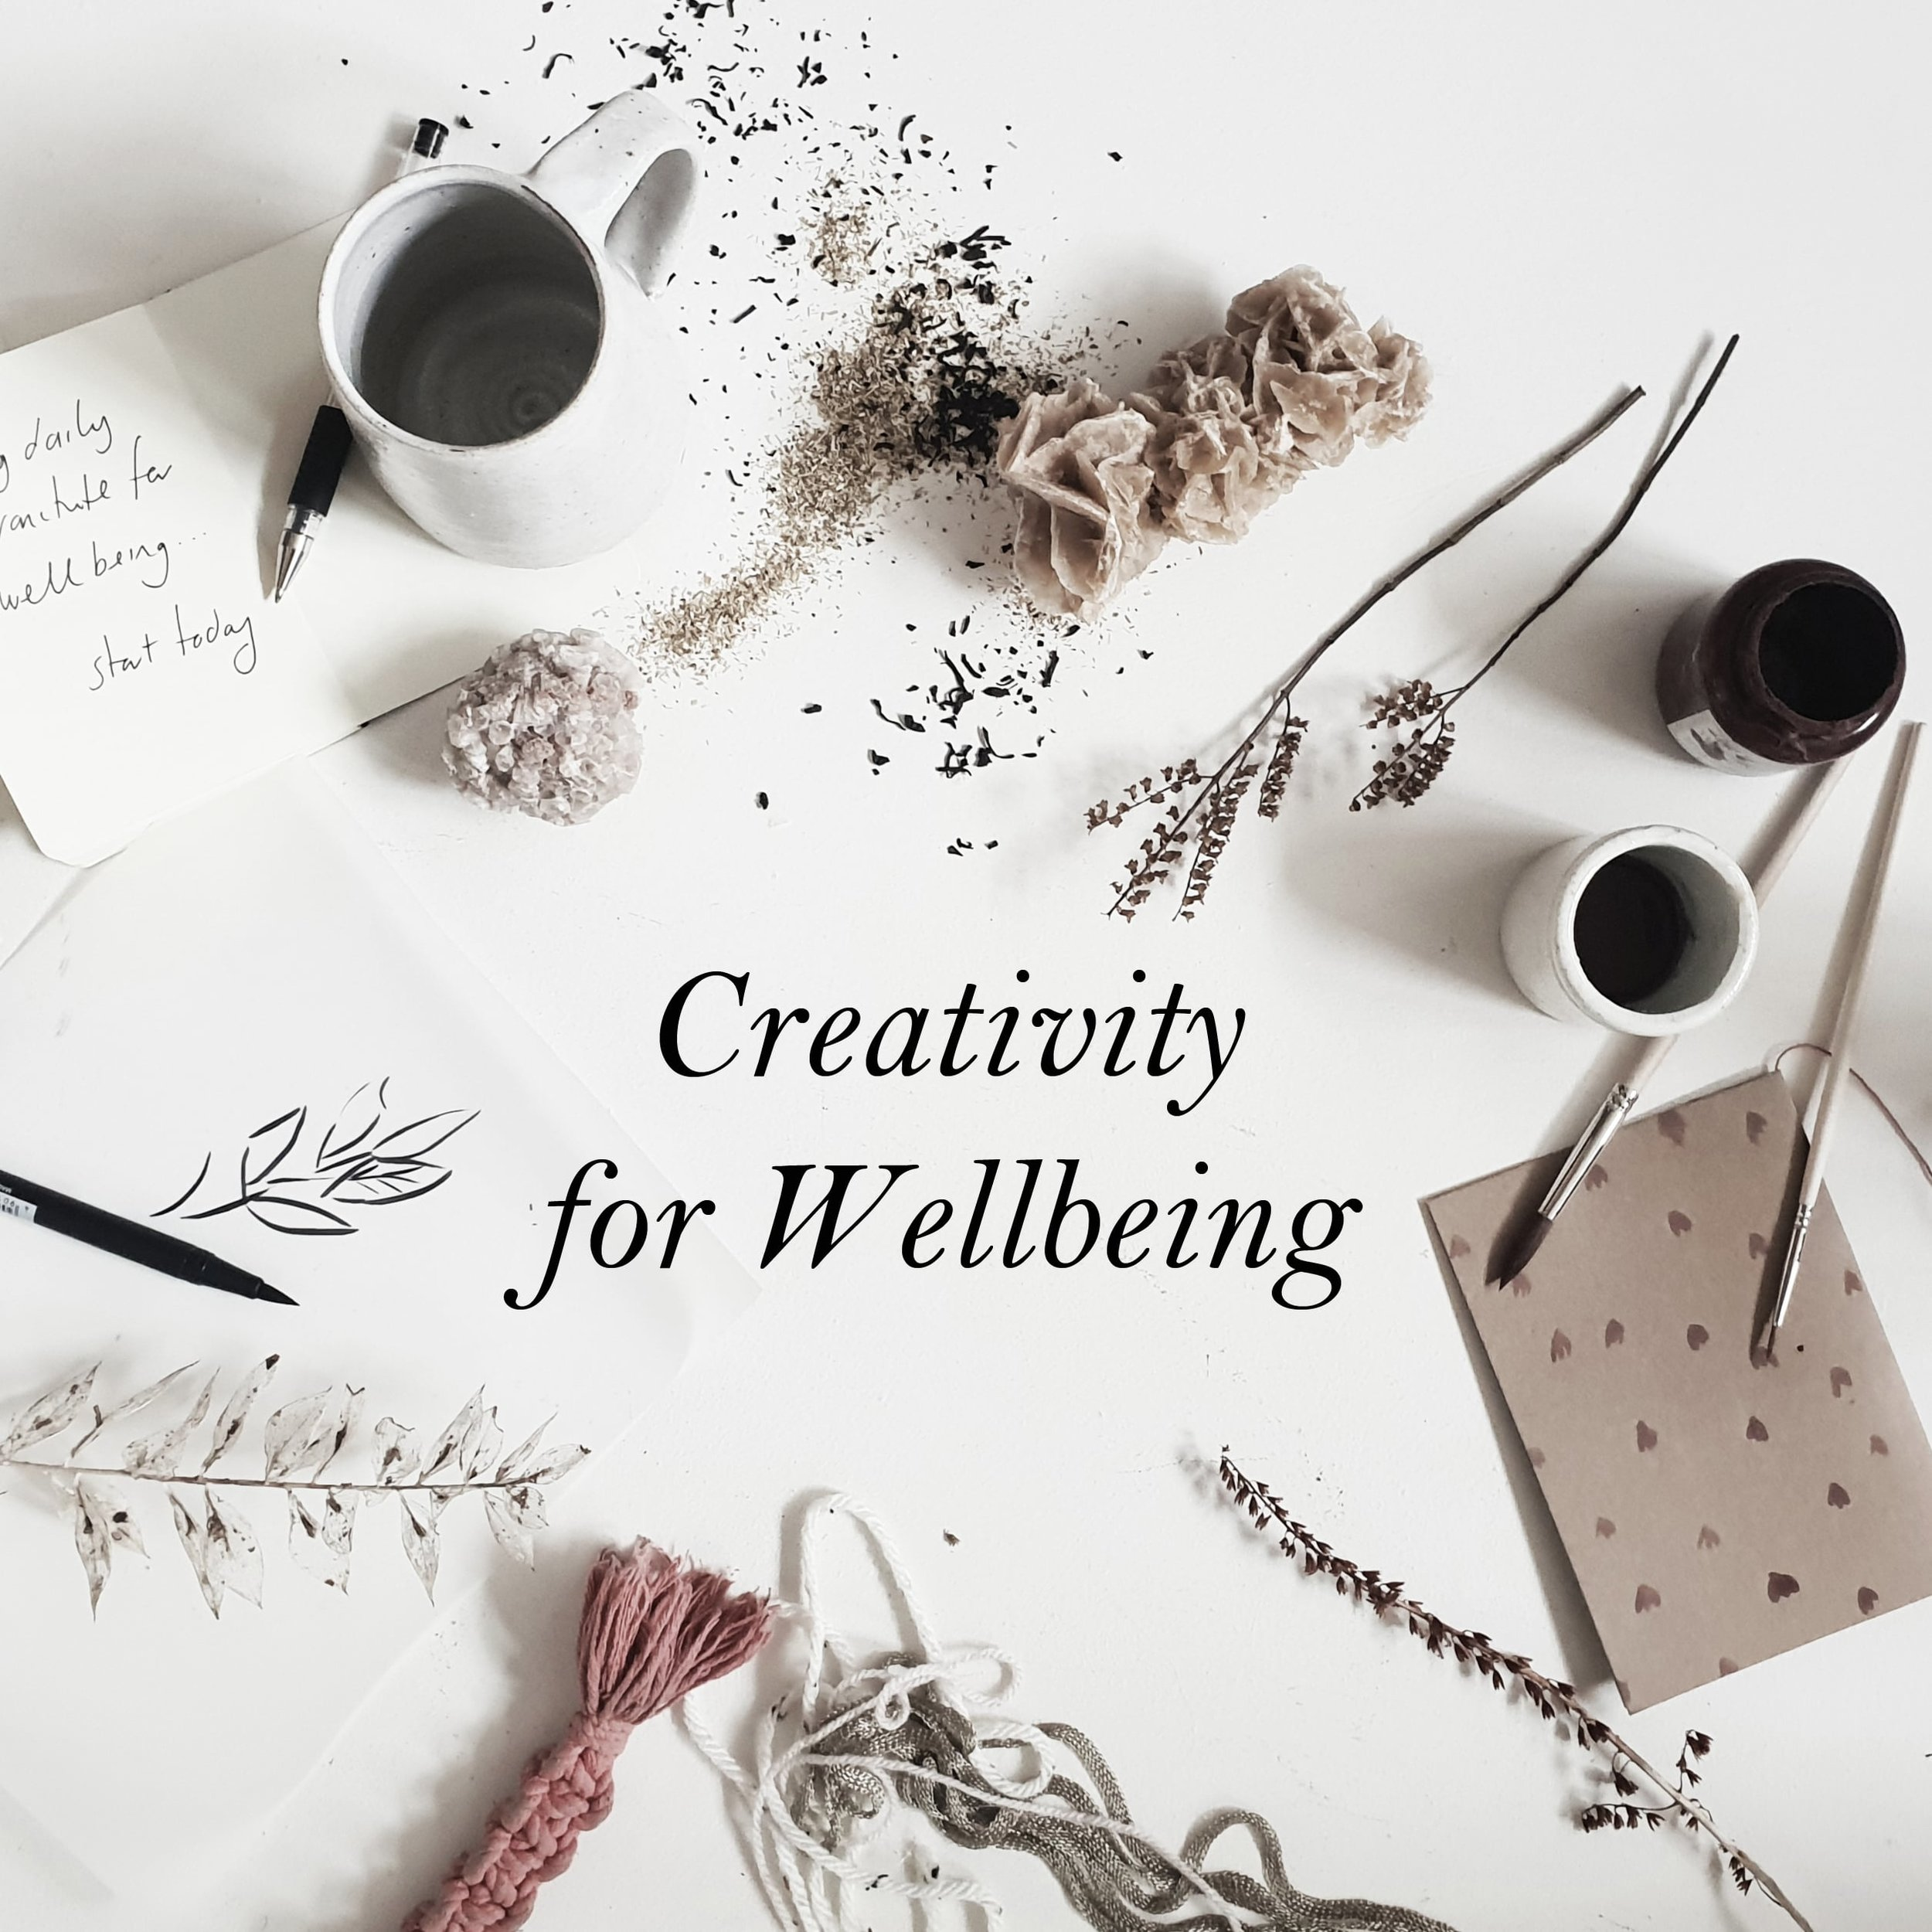 creativity for wellbeing front-min.jpg